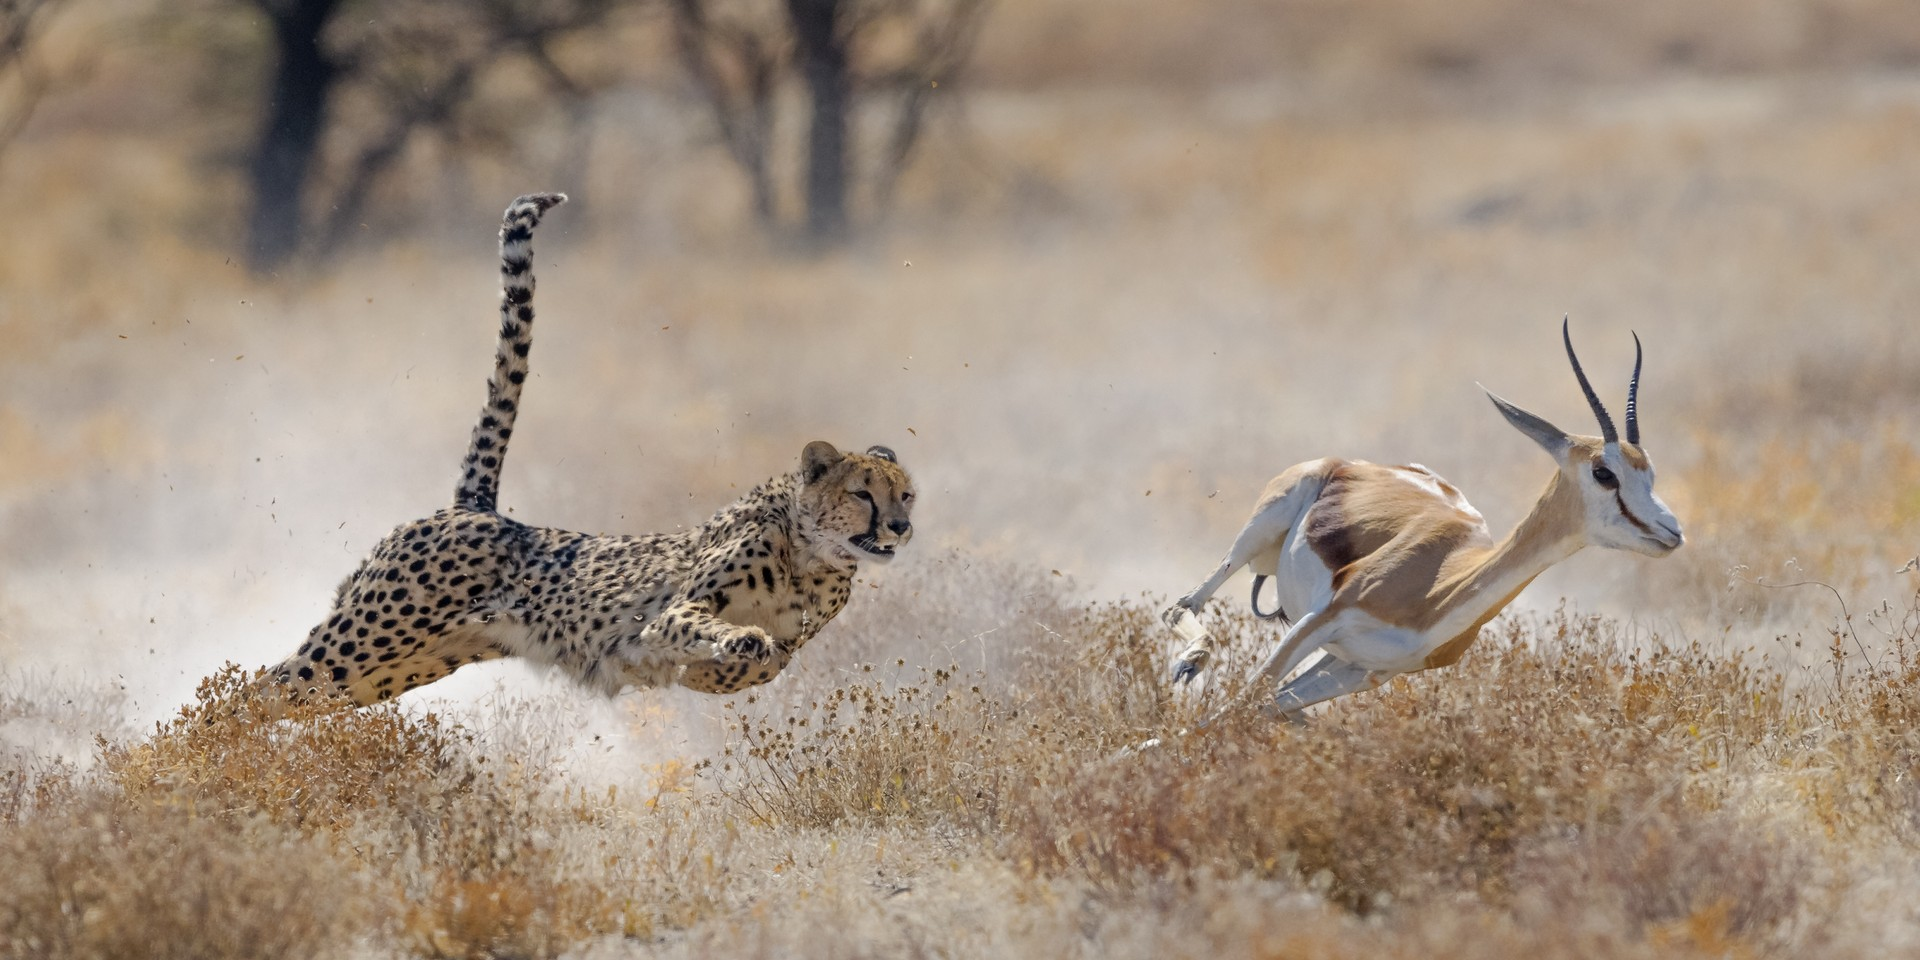 Cheetah hunting in Namibia